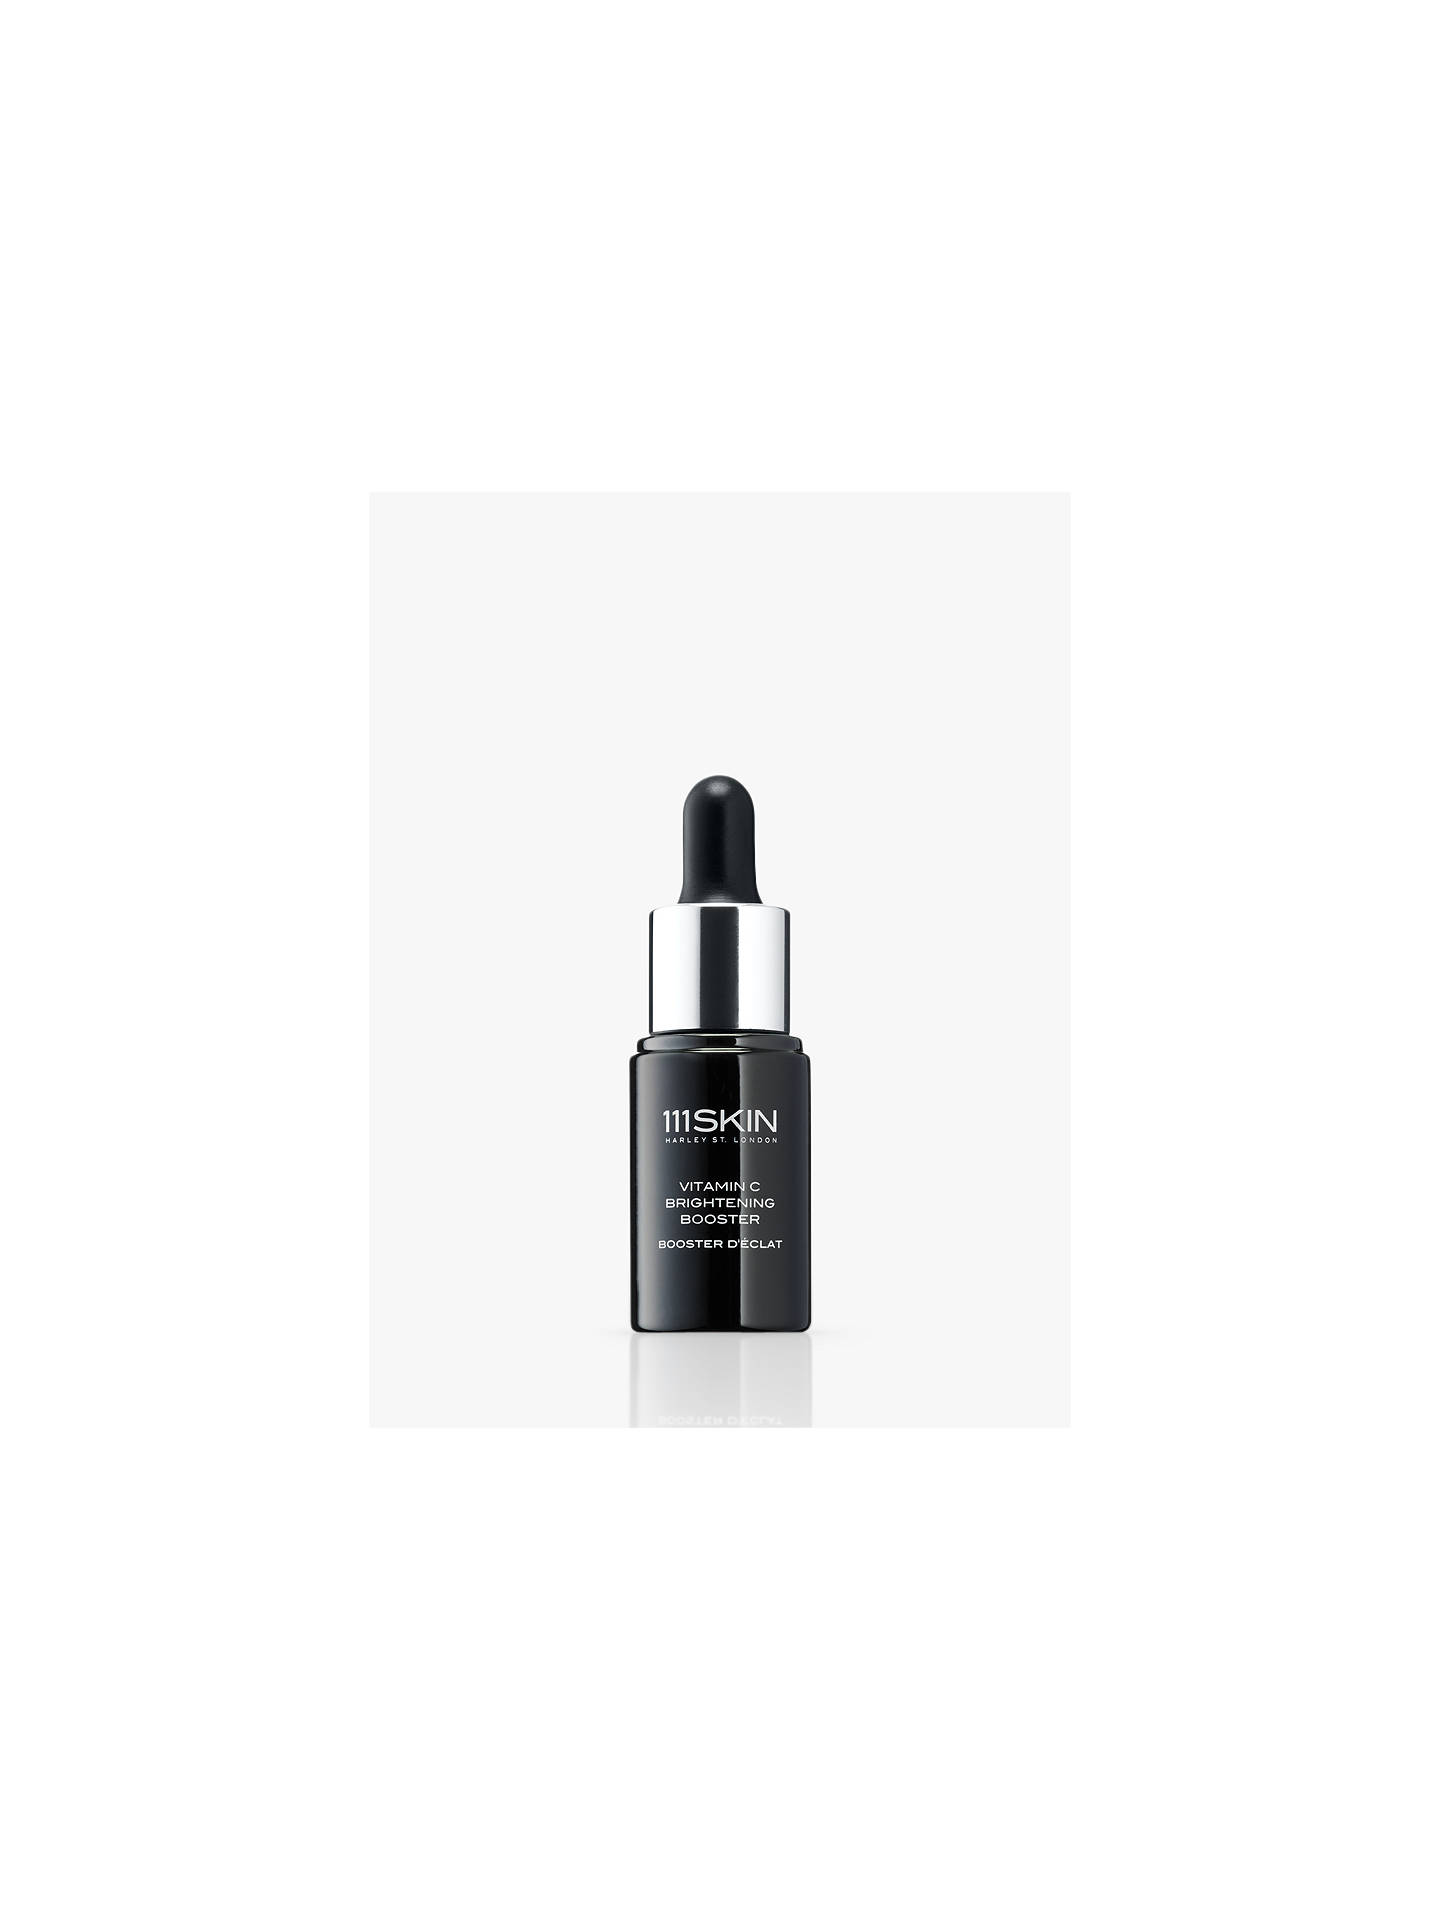 Buy 111SKIN Vitamin C Brightening Booster, 20ml Online at johnlewis.com